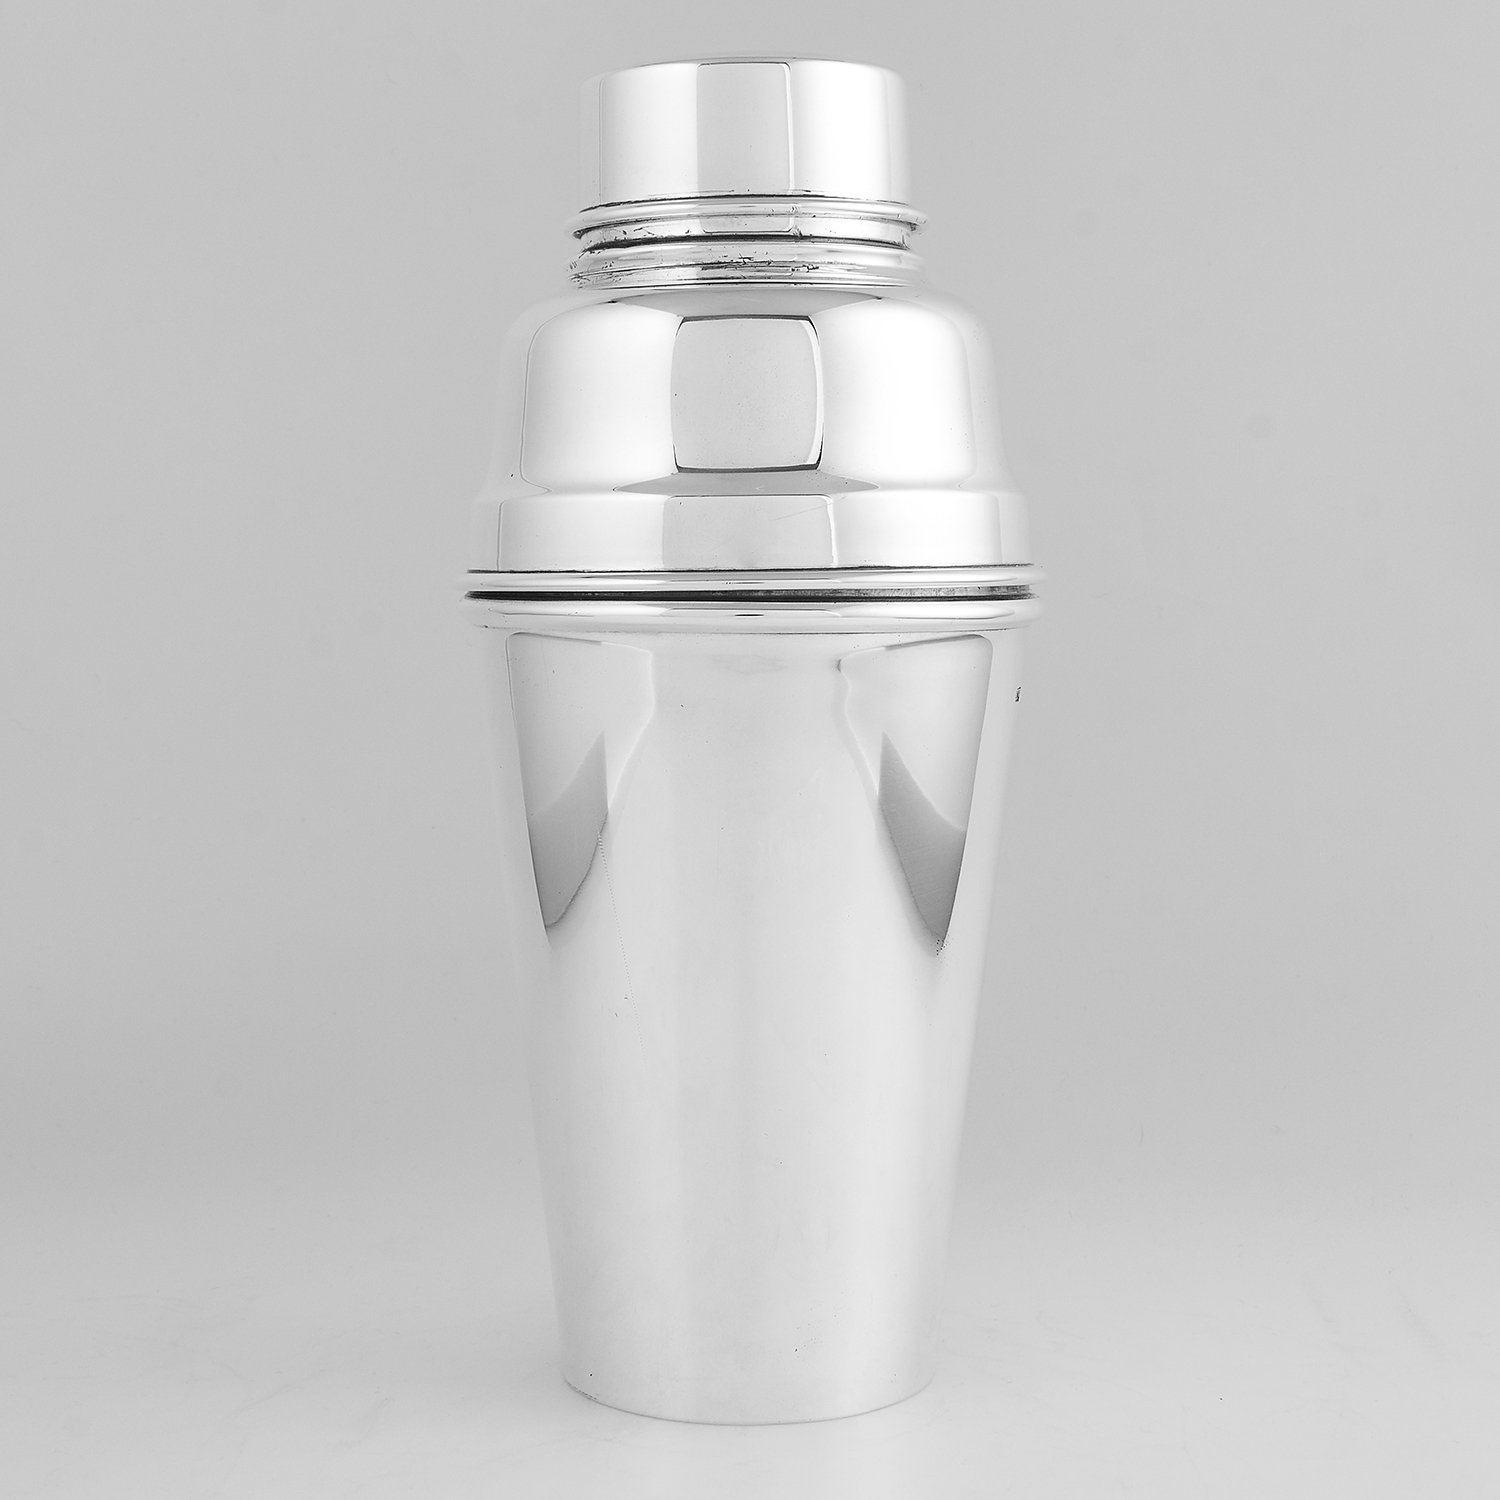 ANTIQUE GEORGE V STERLING SILVER COCKTAIL SHAKER, VINERS LTD LONDON 1934 the tapering body plain